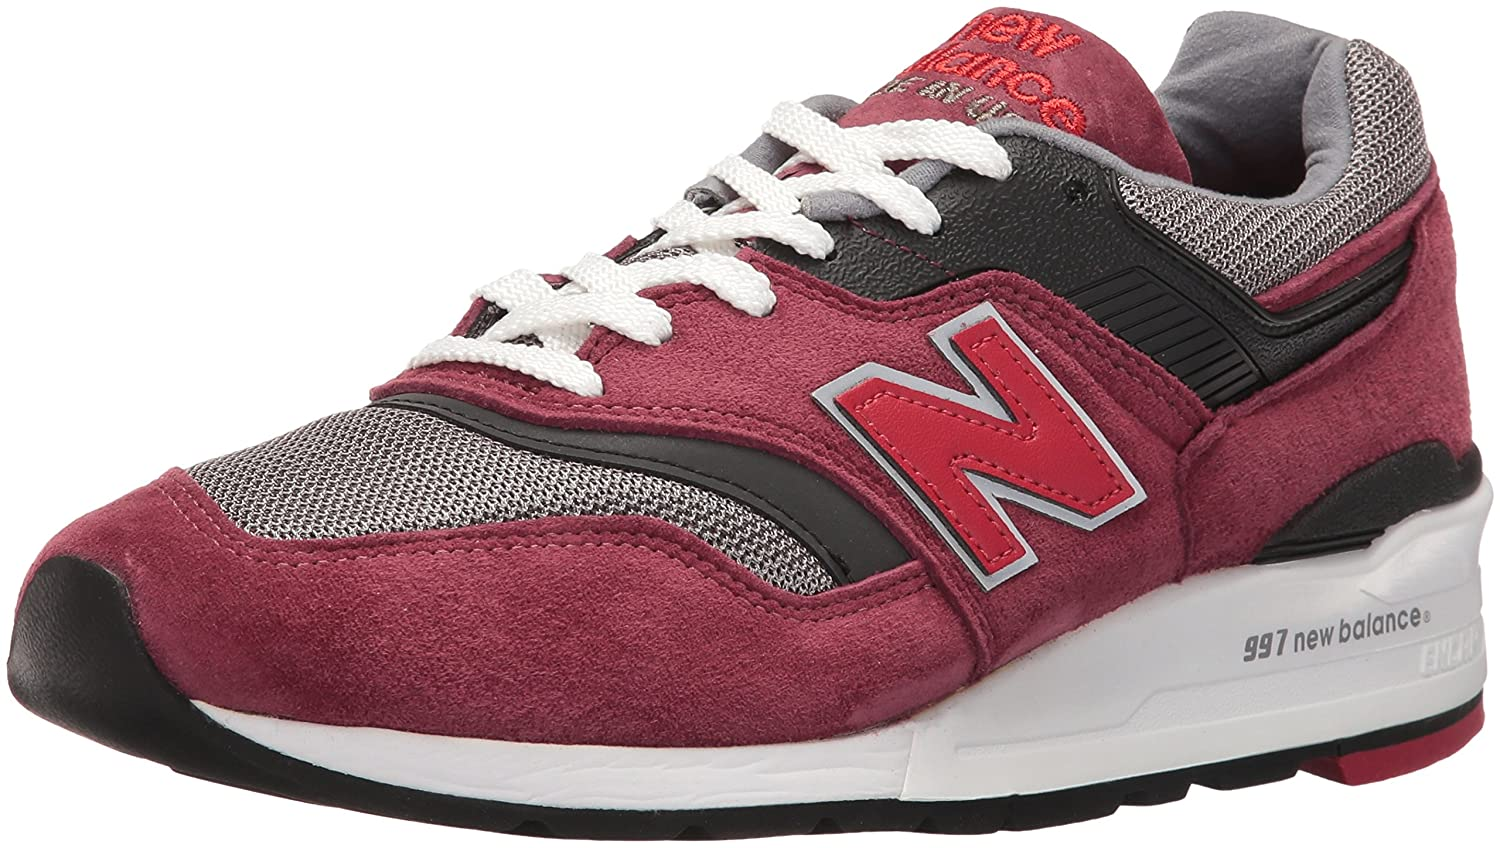 premium selection aa357 3d70e New Balance Men M997CRG - Made in USA (Burgundy/Gray)